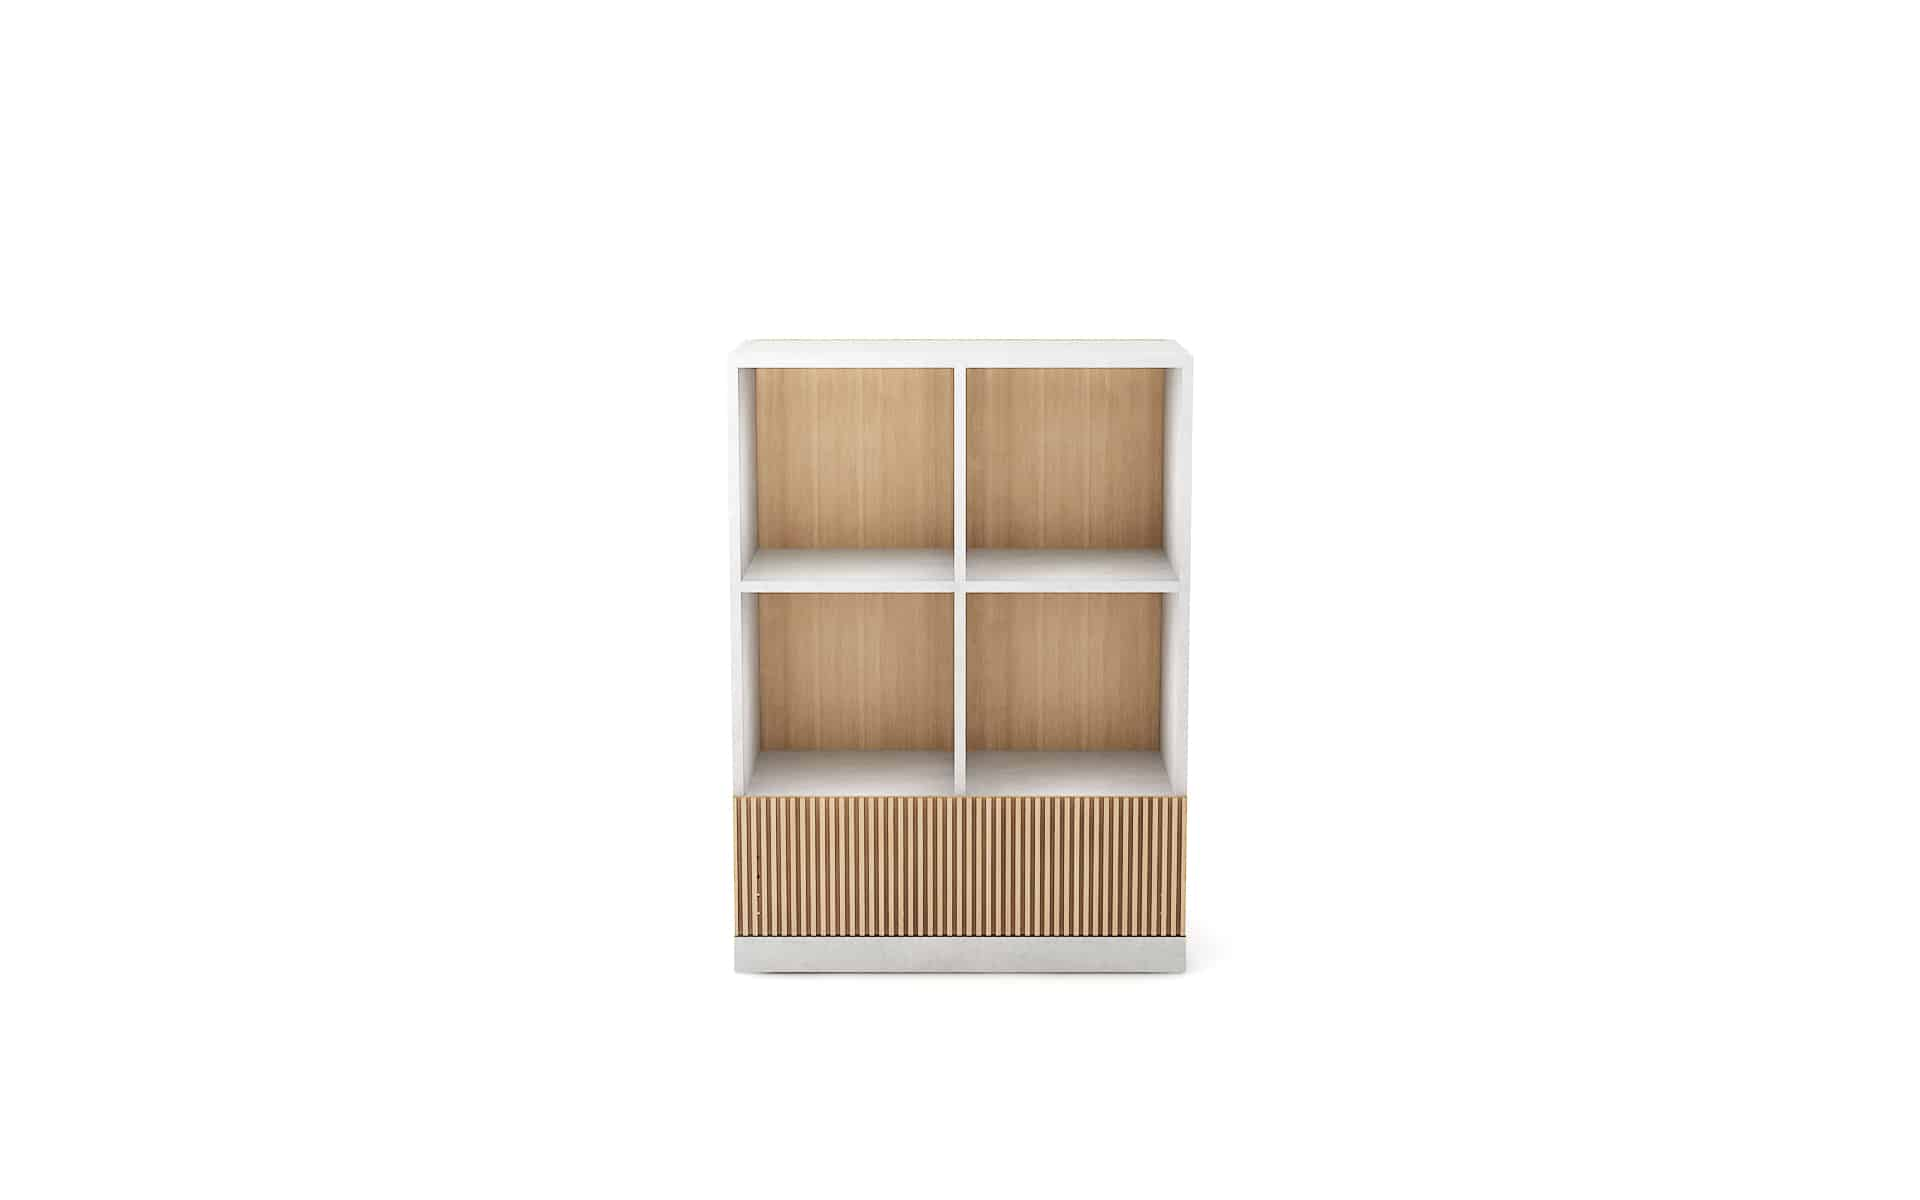 Shelving unit Zero image 4